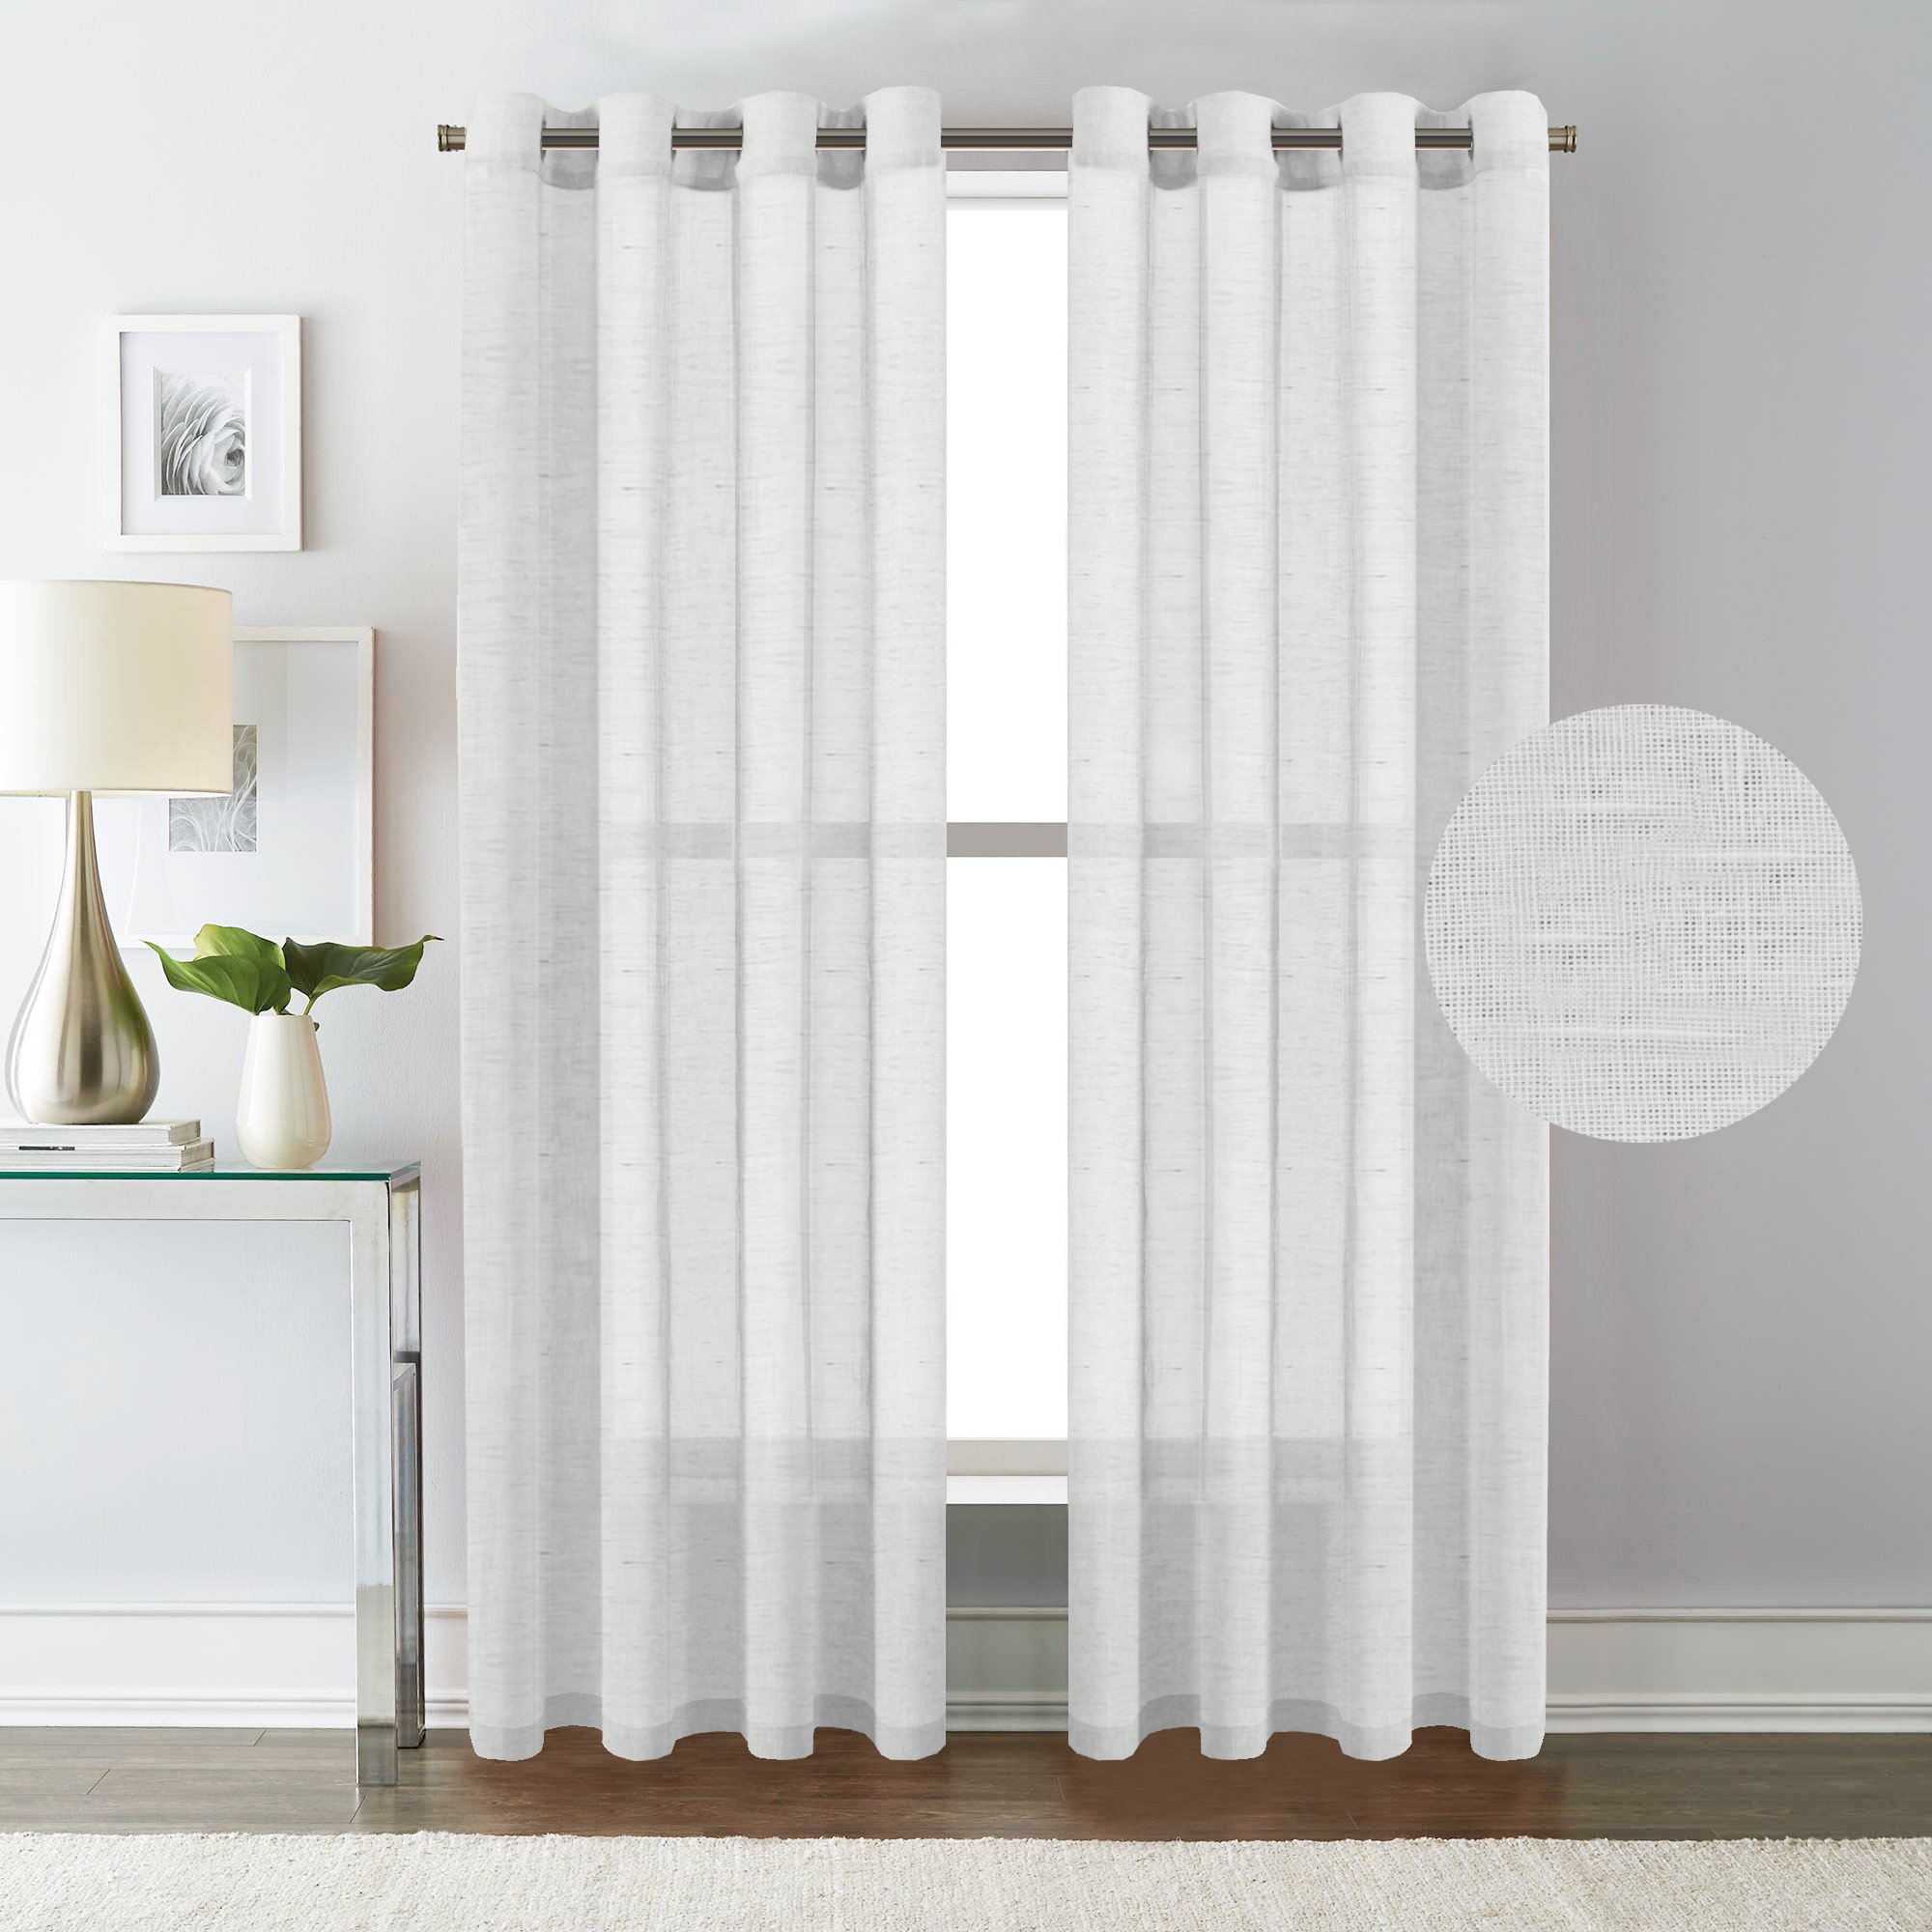 panels curtain white crate panel barrel and reviews wallace